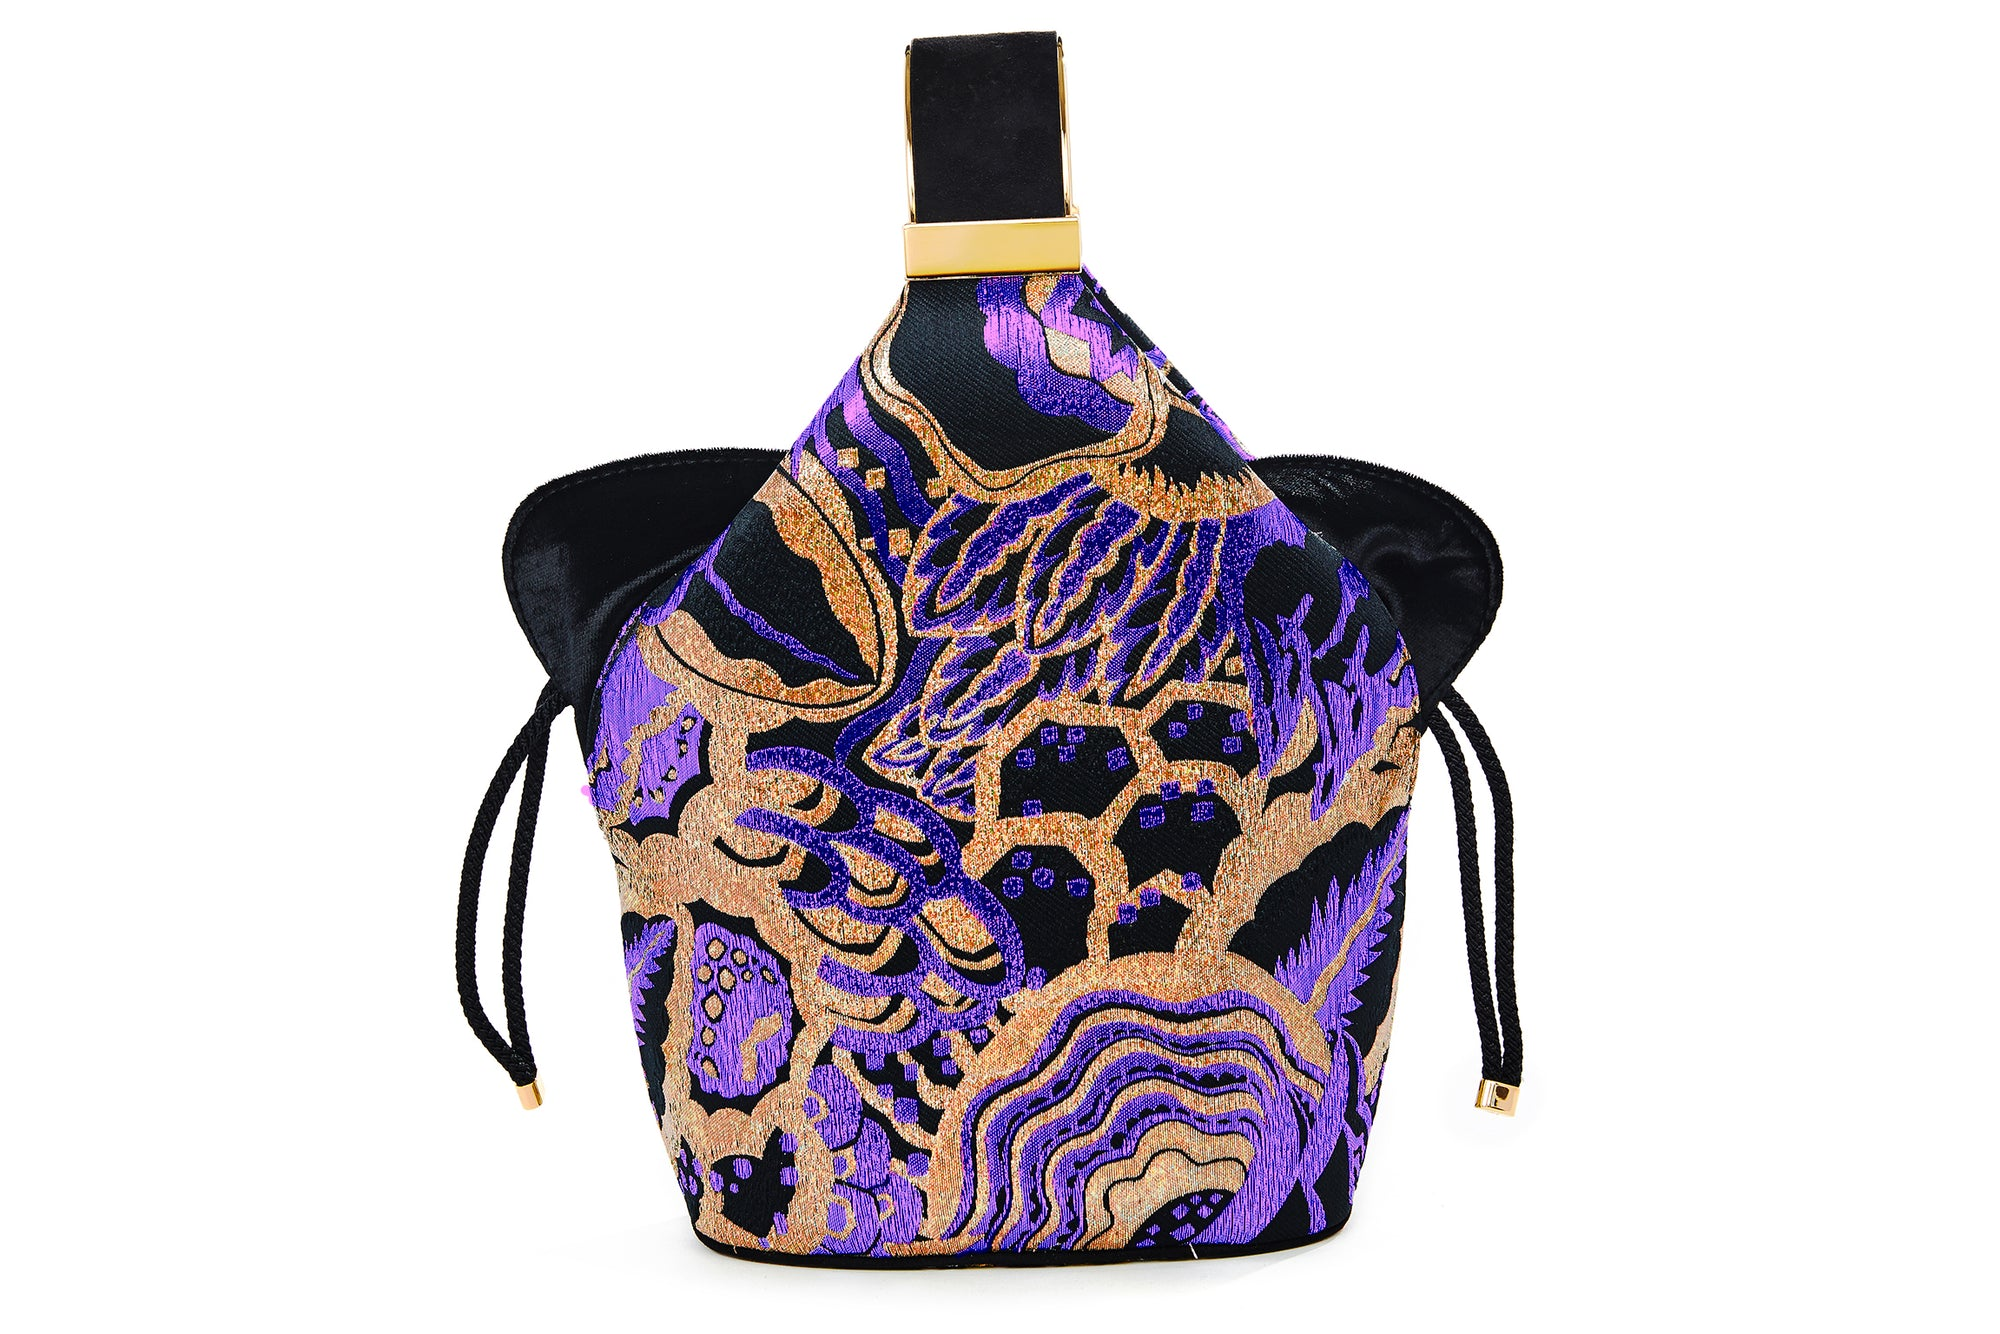 Kit Bracelet Bag in Purple Art Disco Metallic Lurex Jacquard